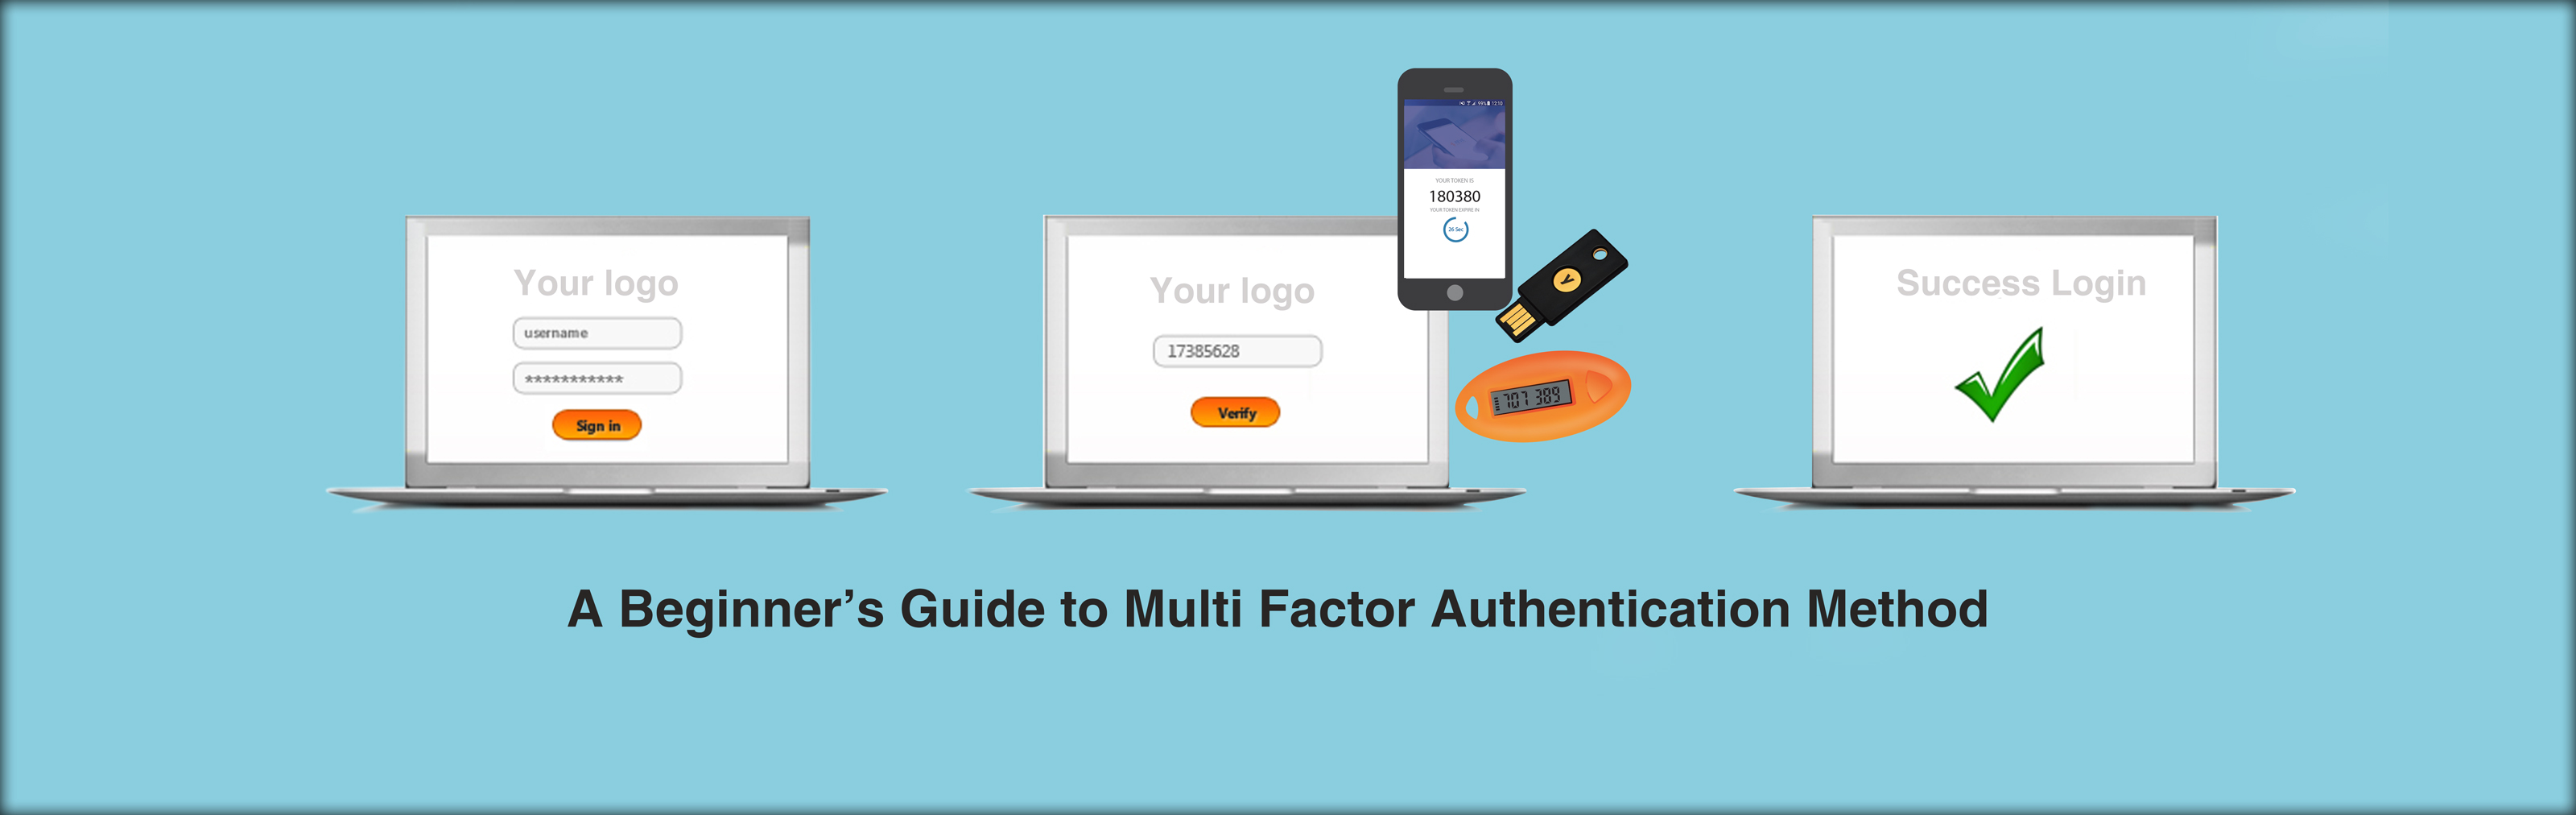 A Beginner's Guide to Multi Factor Authentication Method